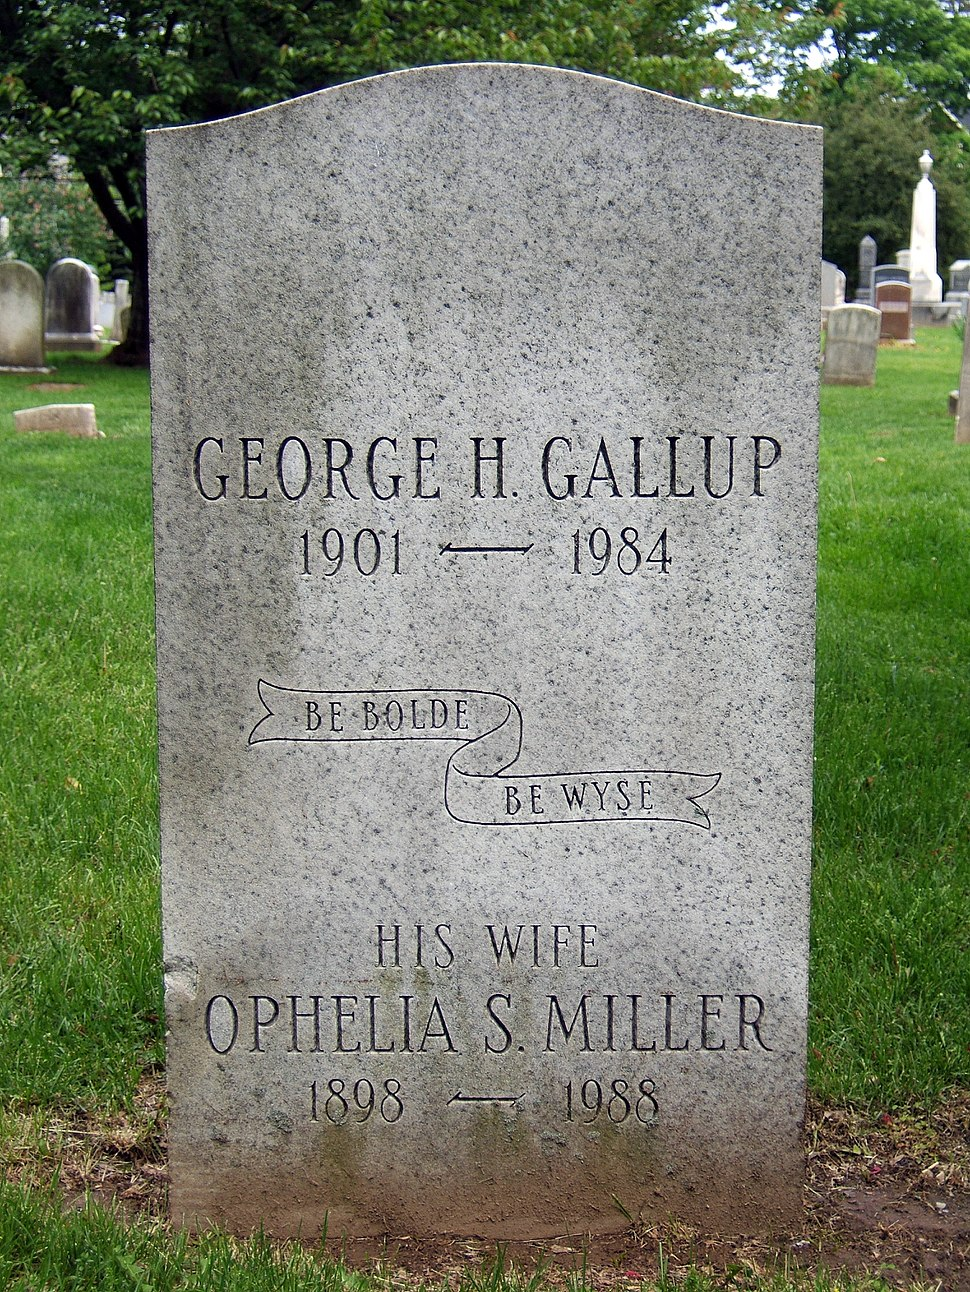 Grave of George H. Gallup